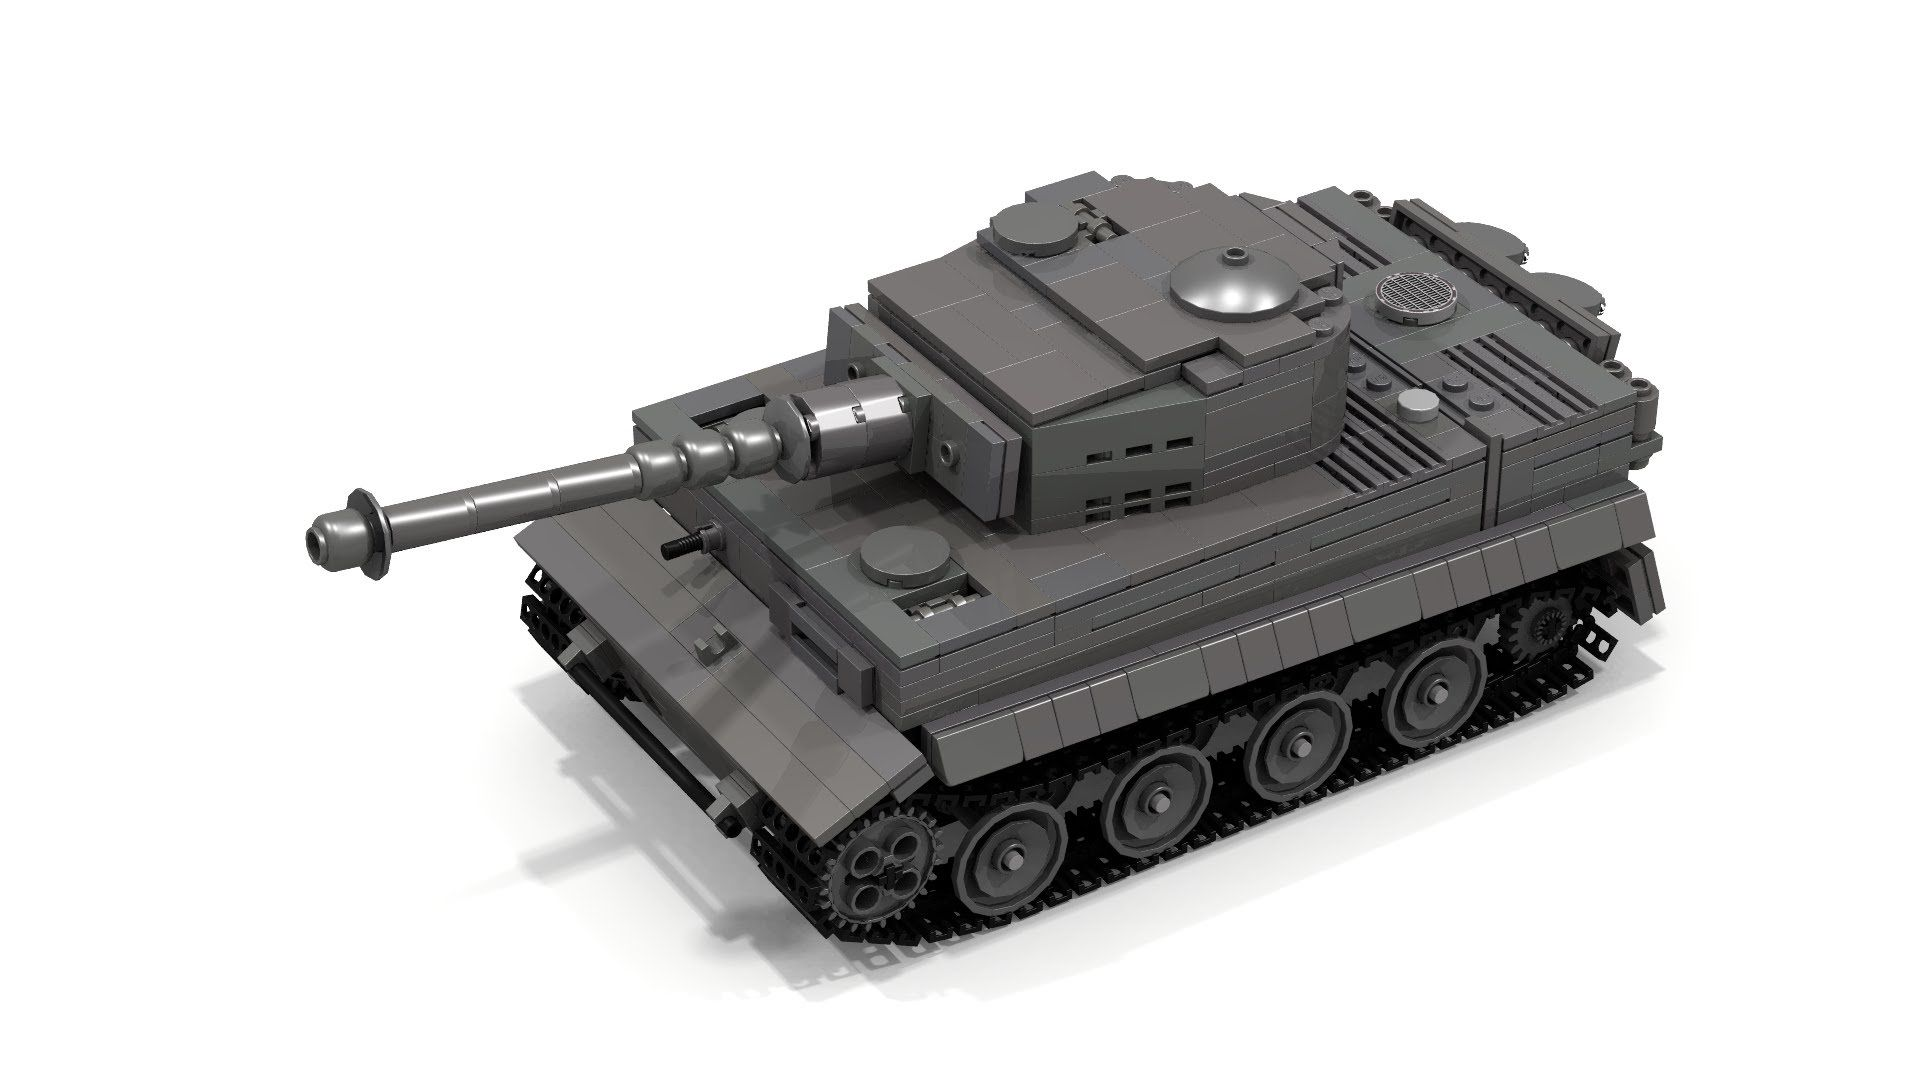 Lego WWII Tiger 1 Instructions (FULL INTERIOR) | Lego Tanks